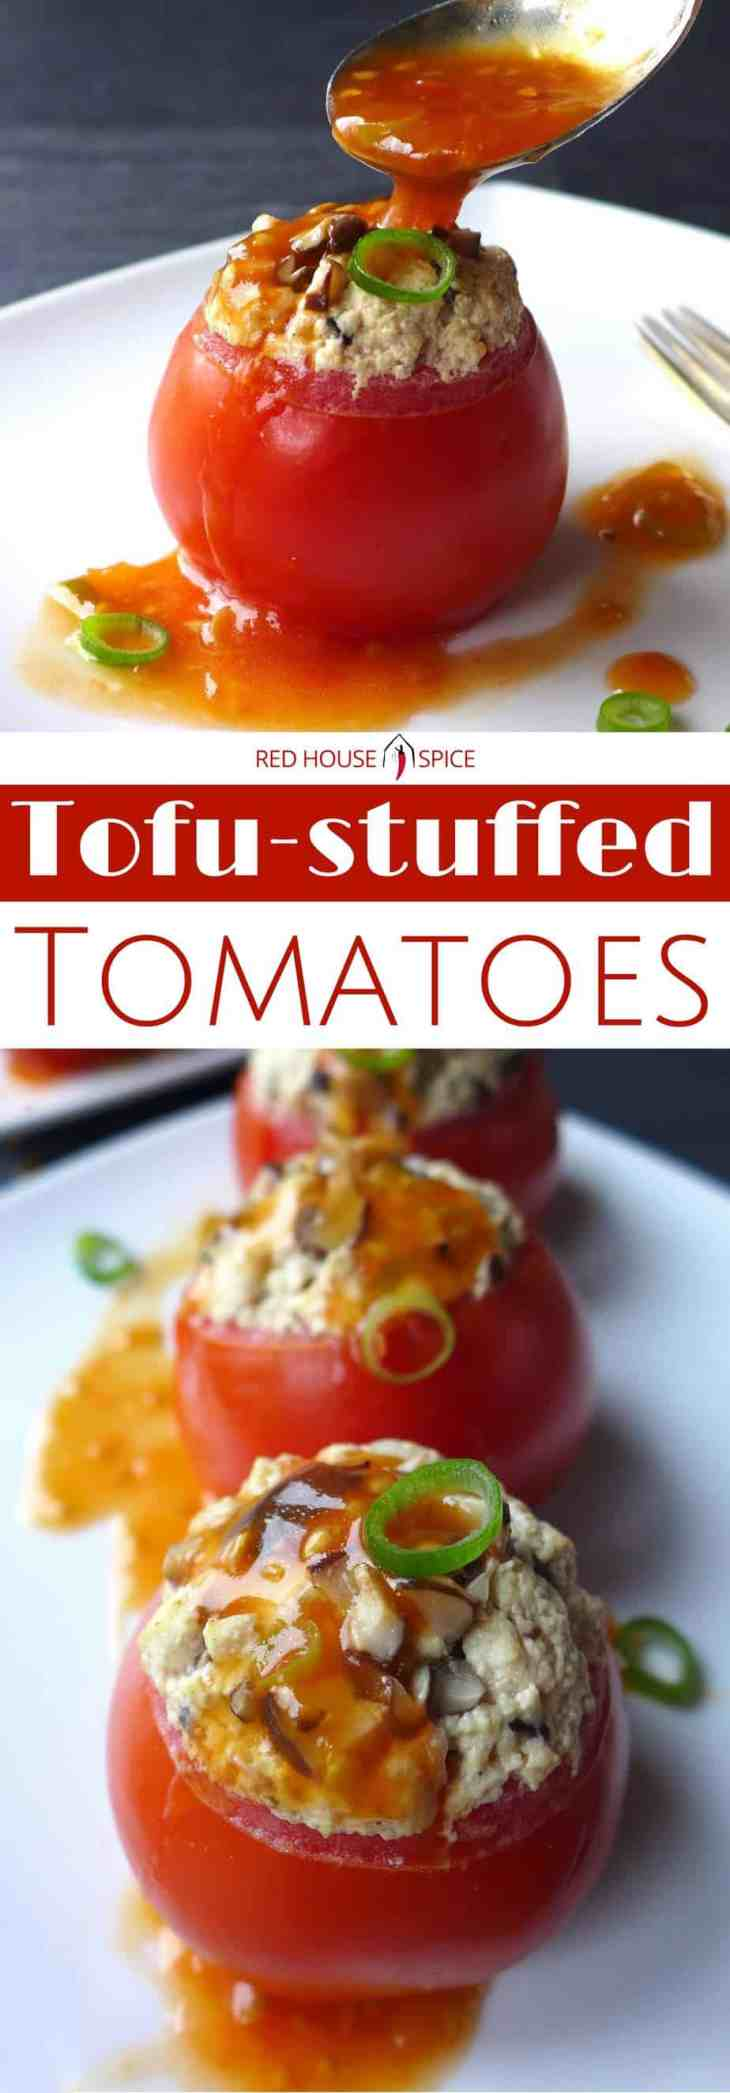 Juicy tomatoes are hollowed and steamed with well seasoned tofu crumbs, then served with a sweet and sour sauce made from the pulp of the tomatoes.